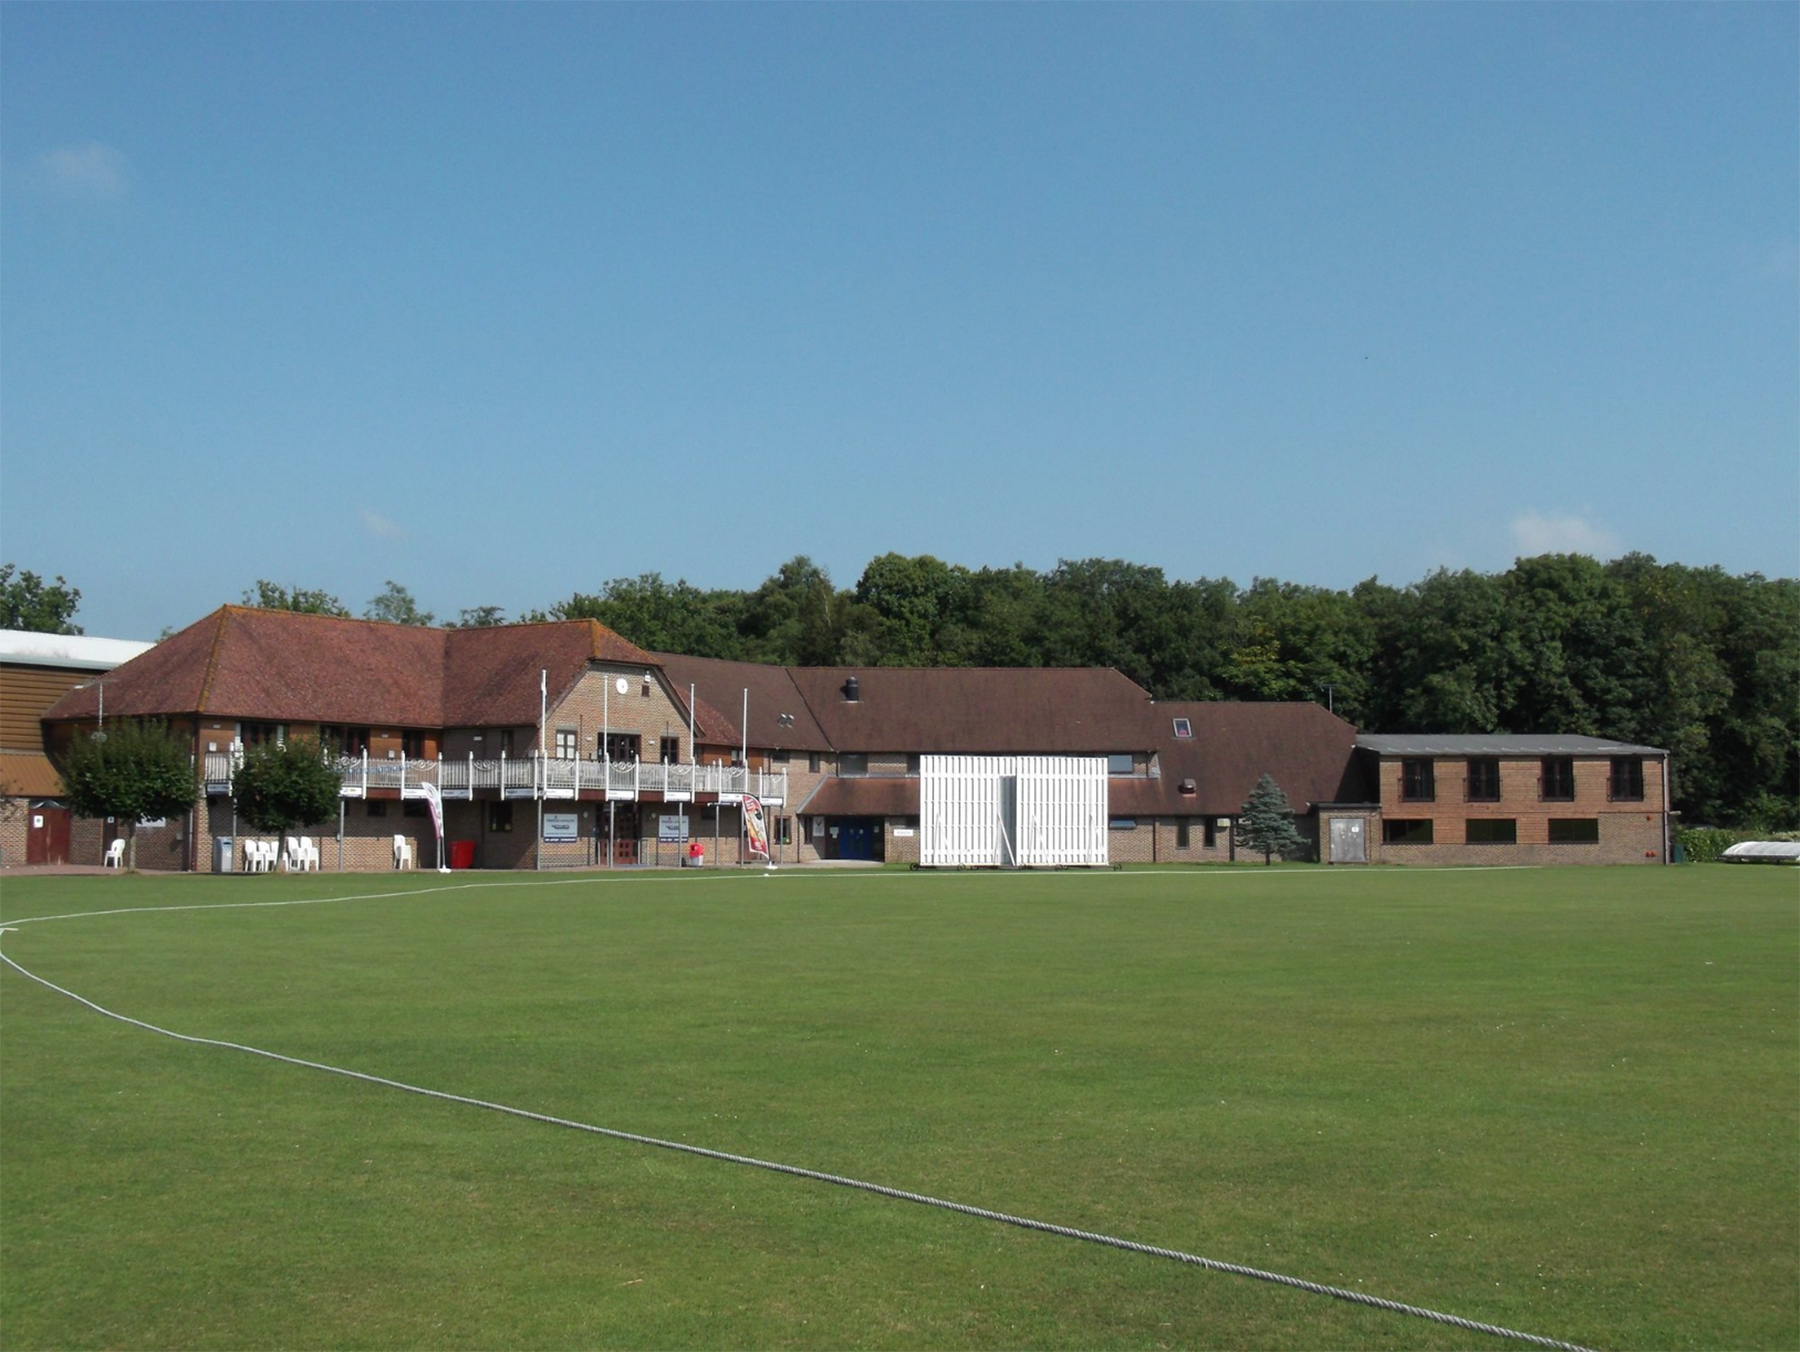 East Grinstead Sports Club Cricket Pitch